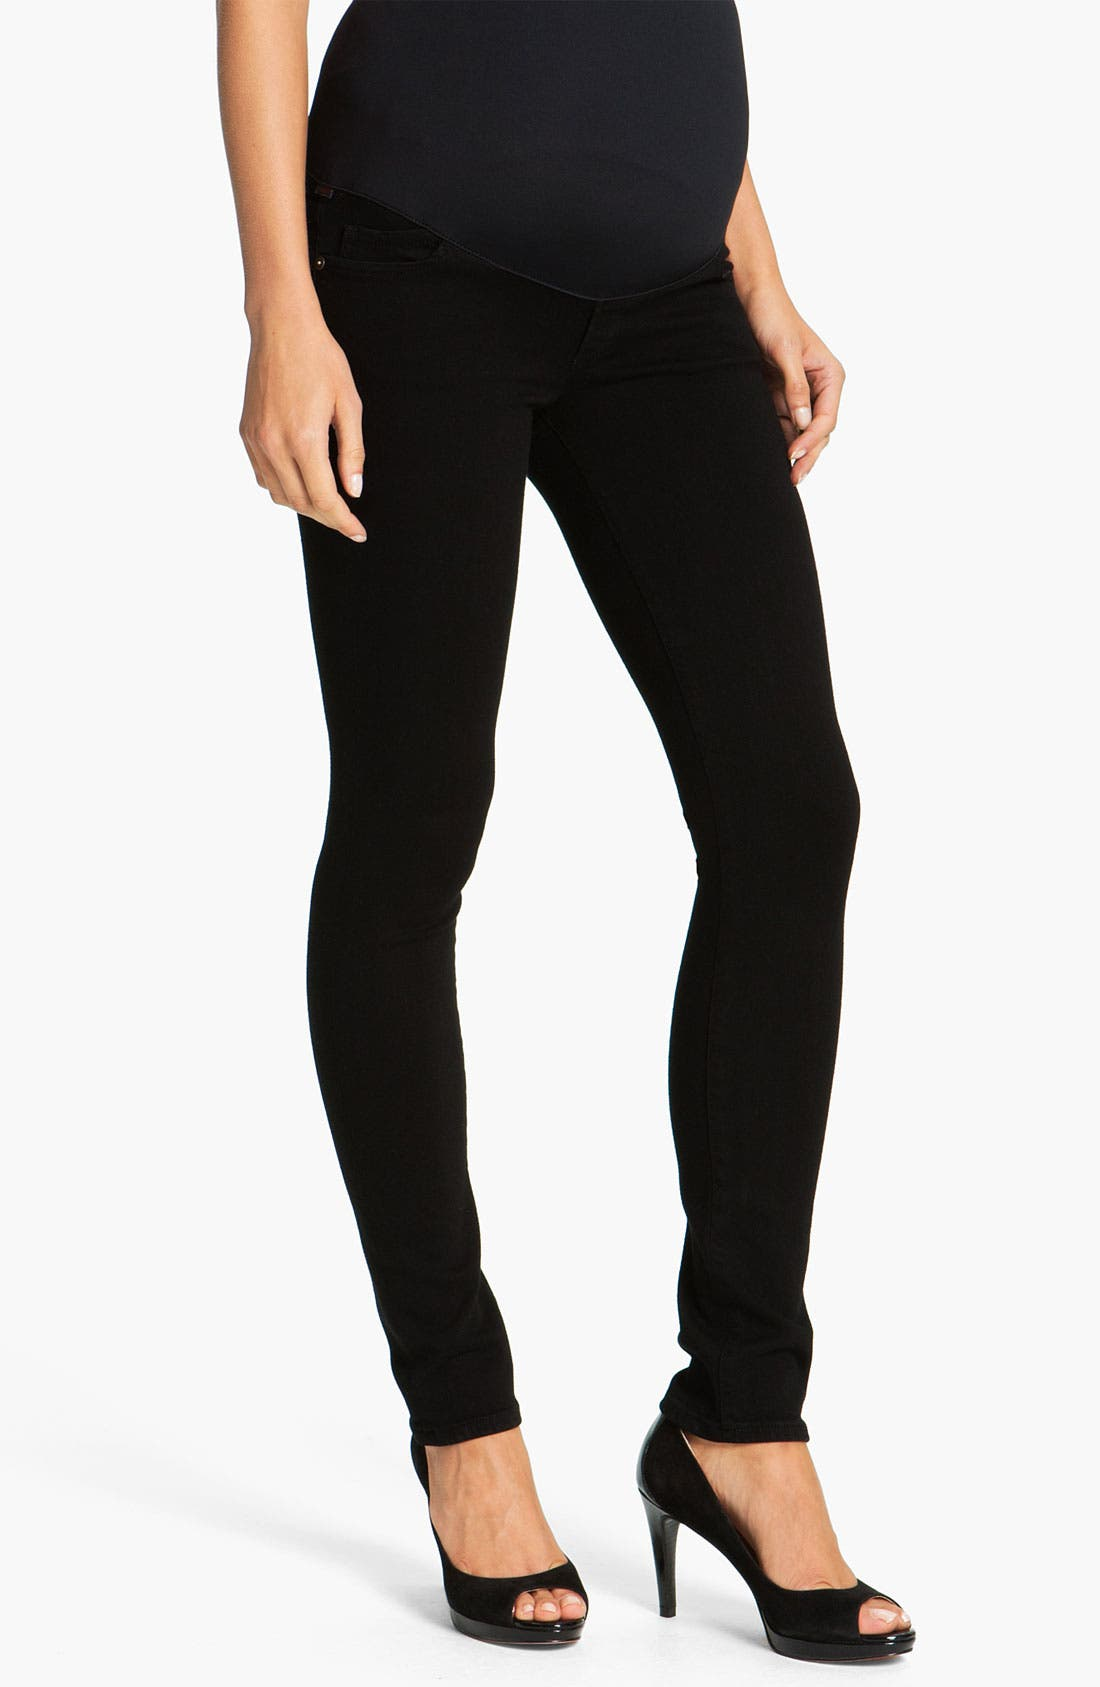 Alternate Image 1 Selected - Citizens of Humanity Maternity Ultra Skinny Stretch Jeans (Star)